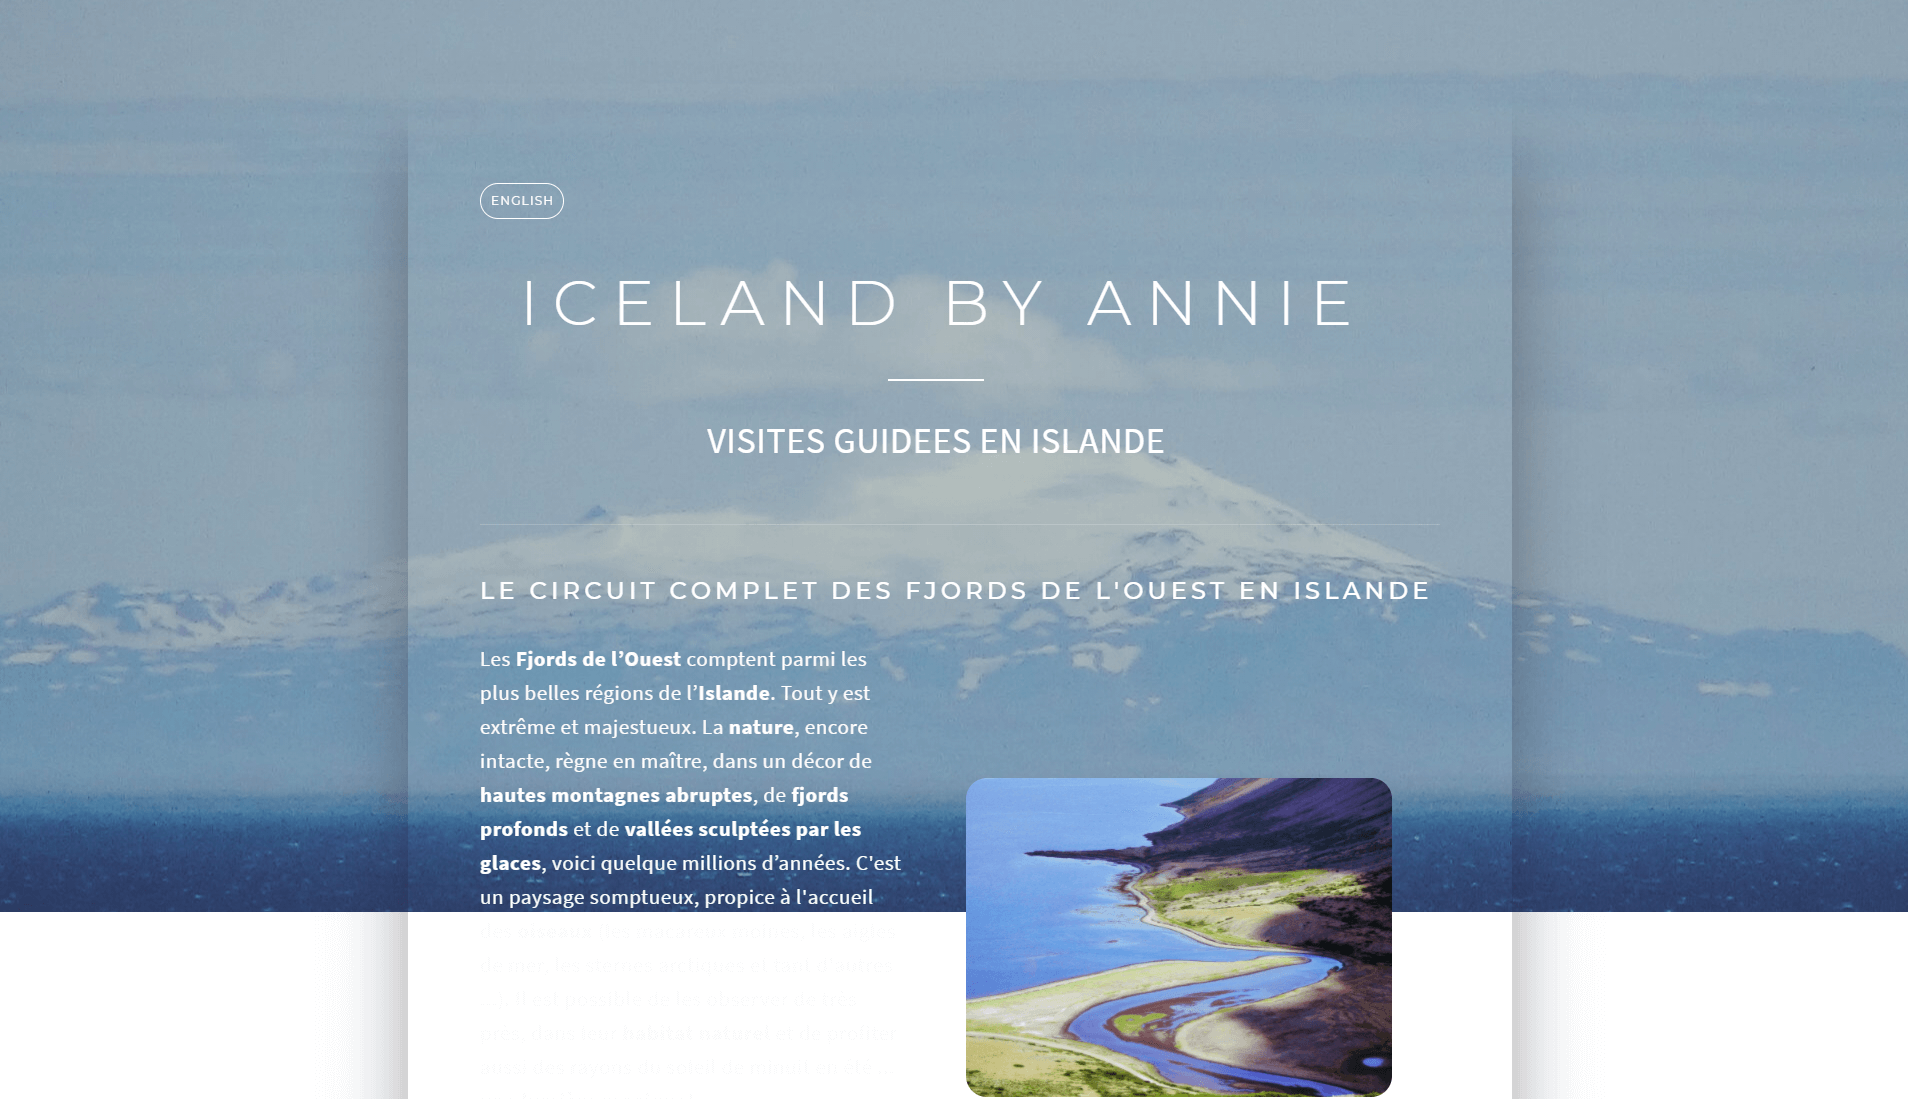 Iceland by Annie